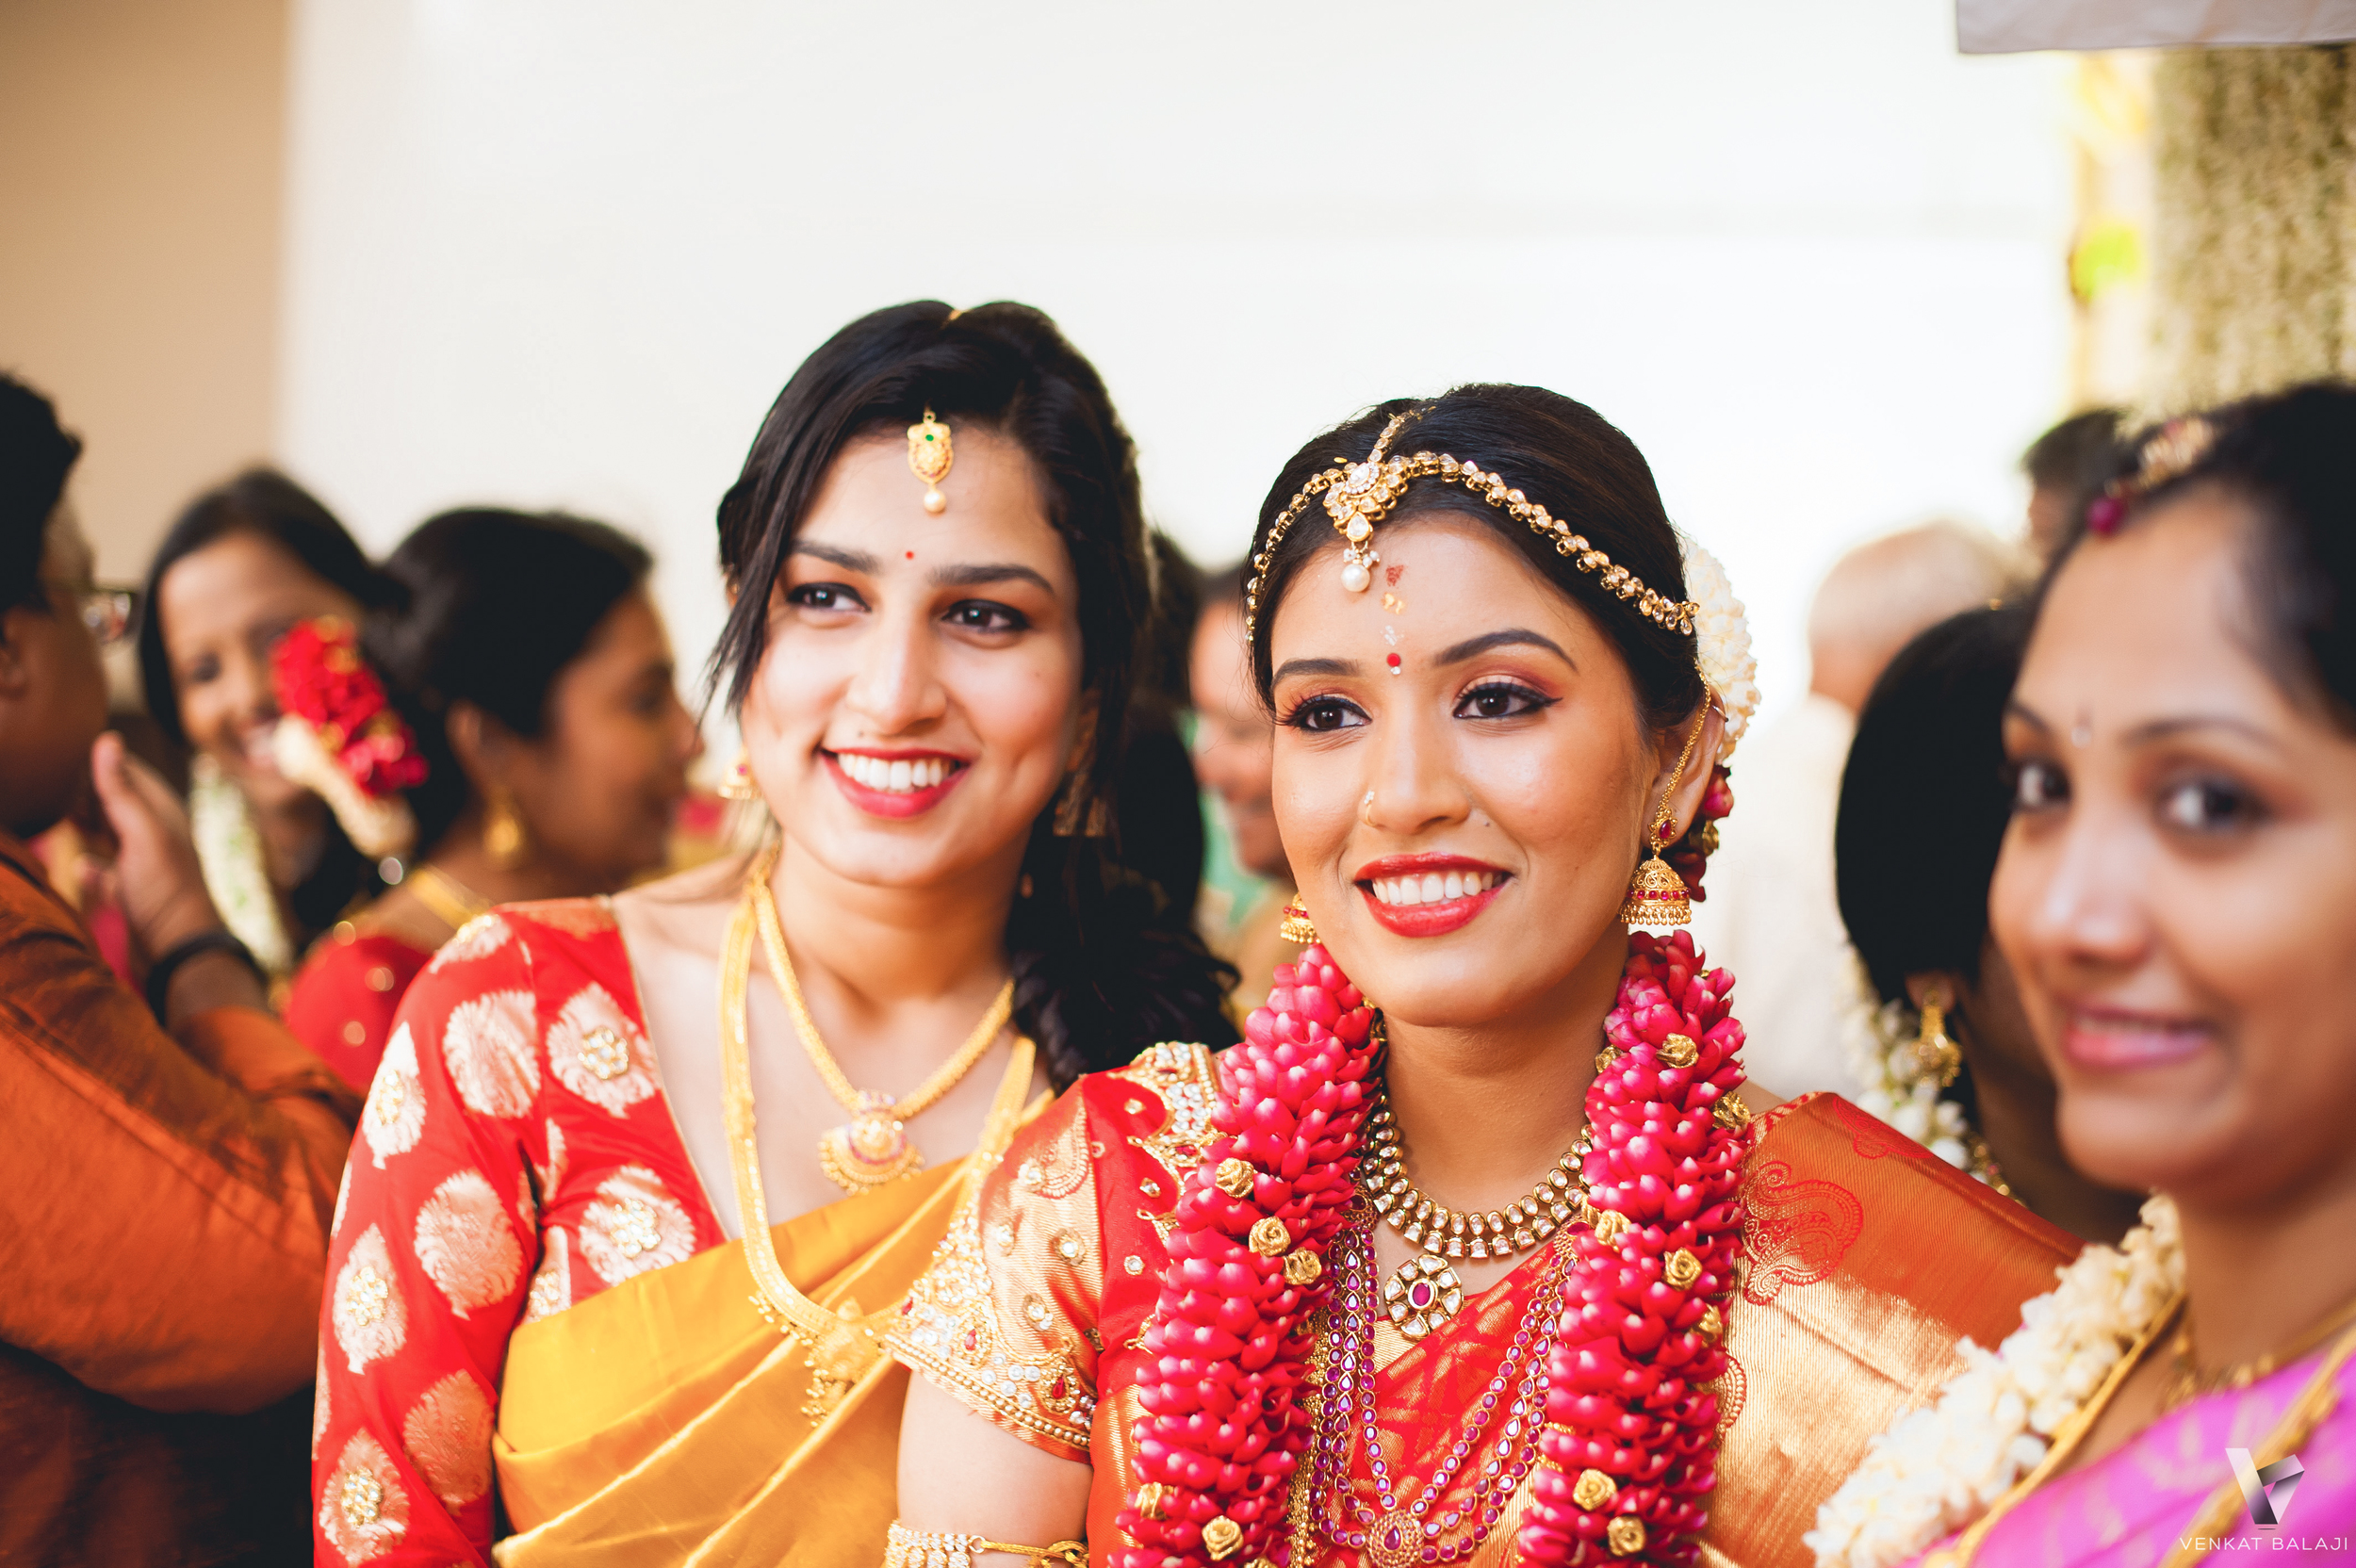 india_wedding_photographer_destination_weddings-9.jpg